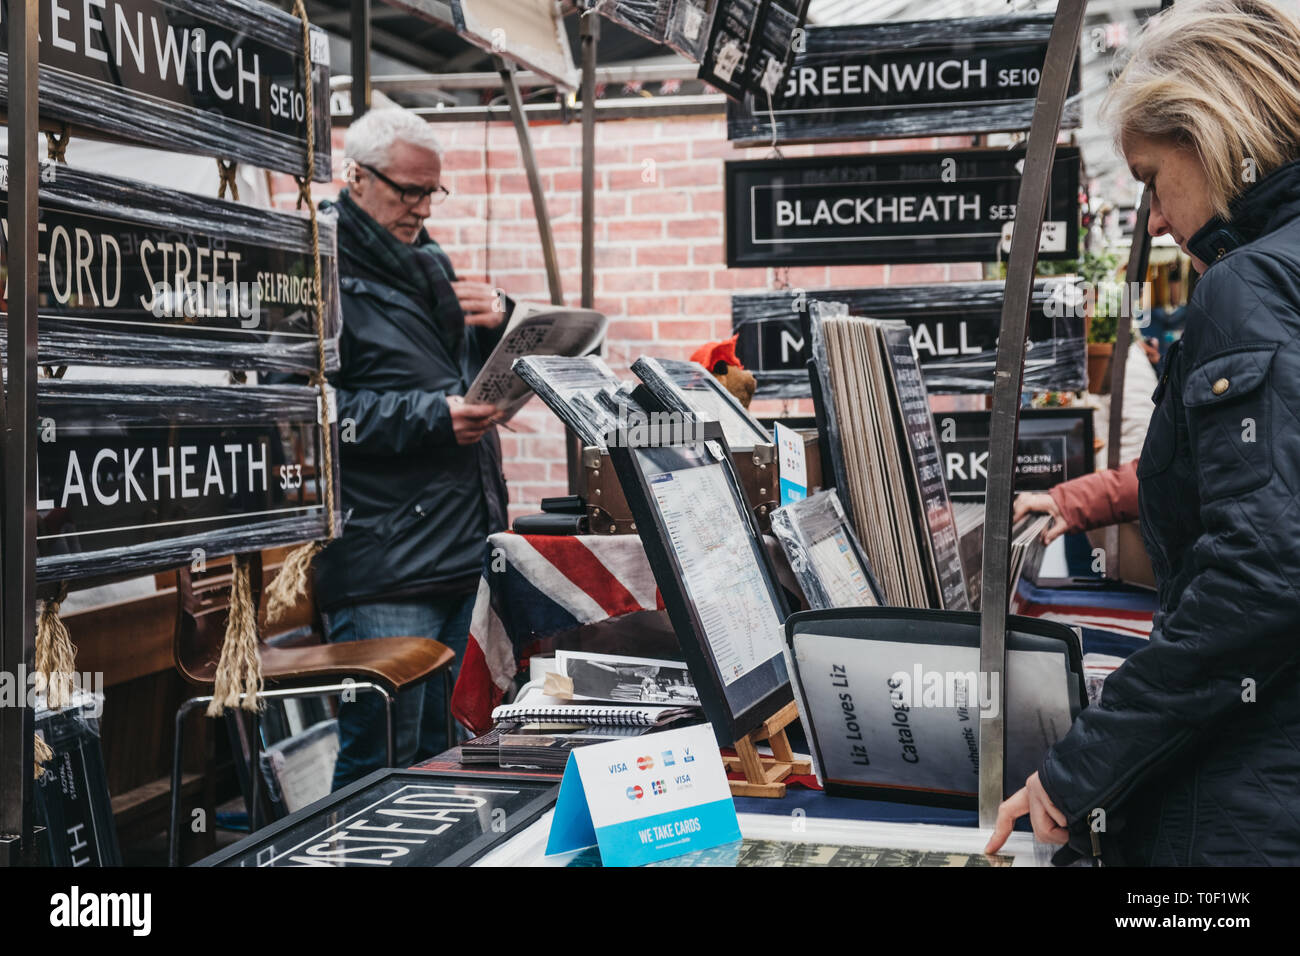 London, UK - March 16. 2019: People looking at posters and home decor on sale at a stall in Greenwich Market, London's only market set within a World  - Stock Image